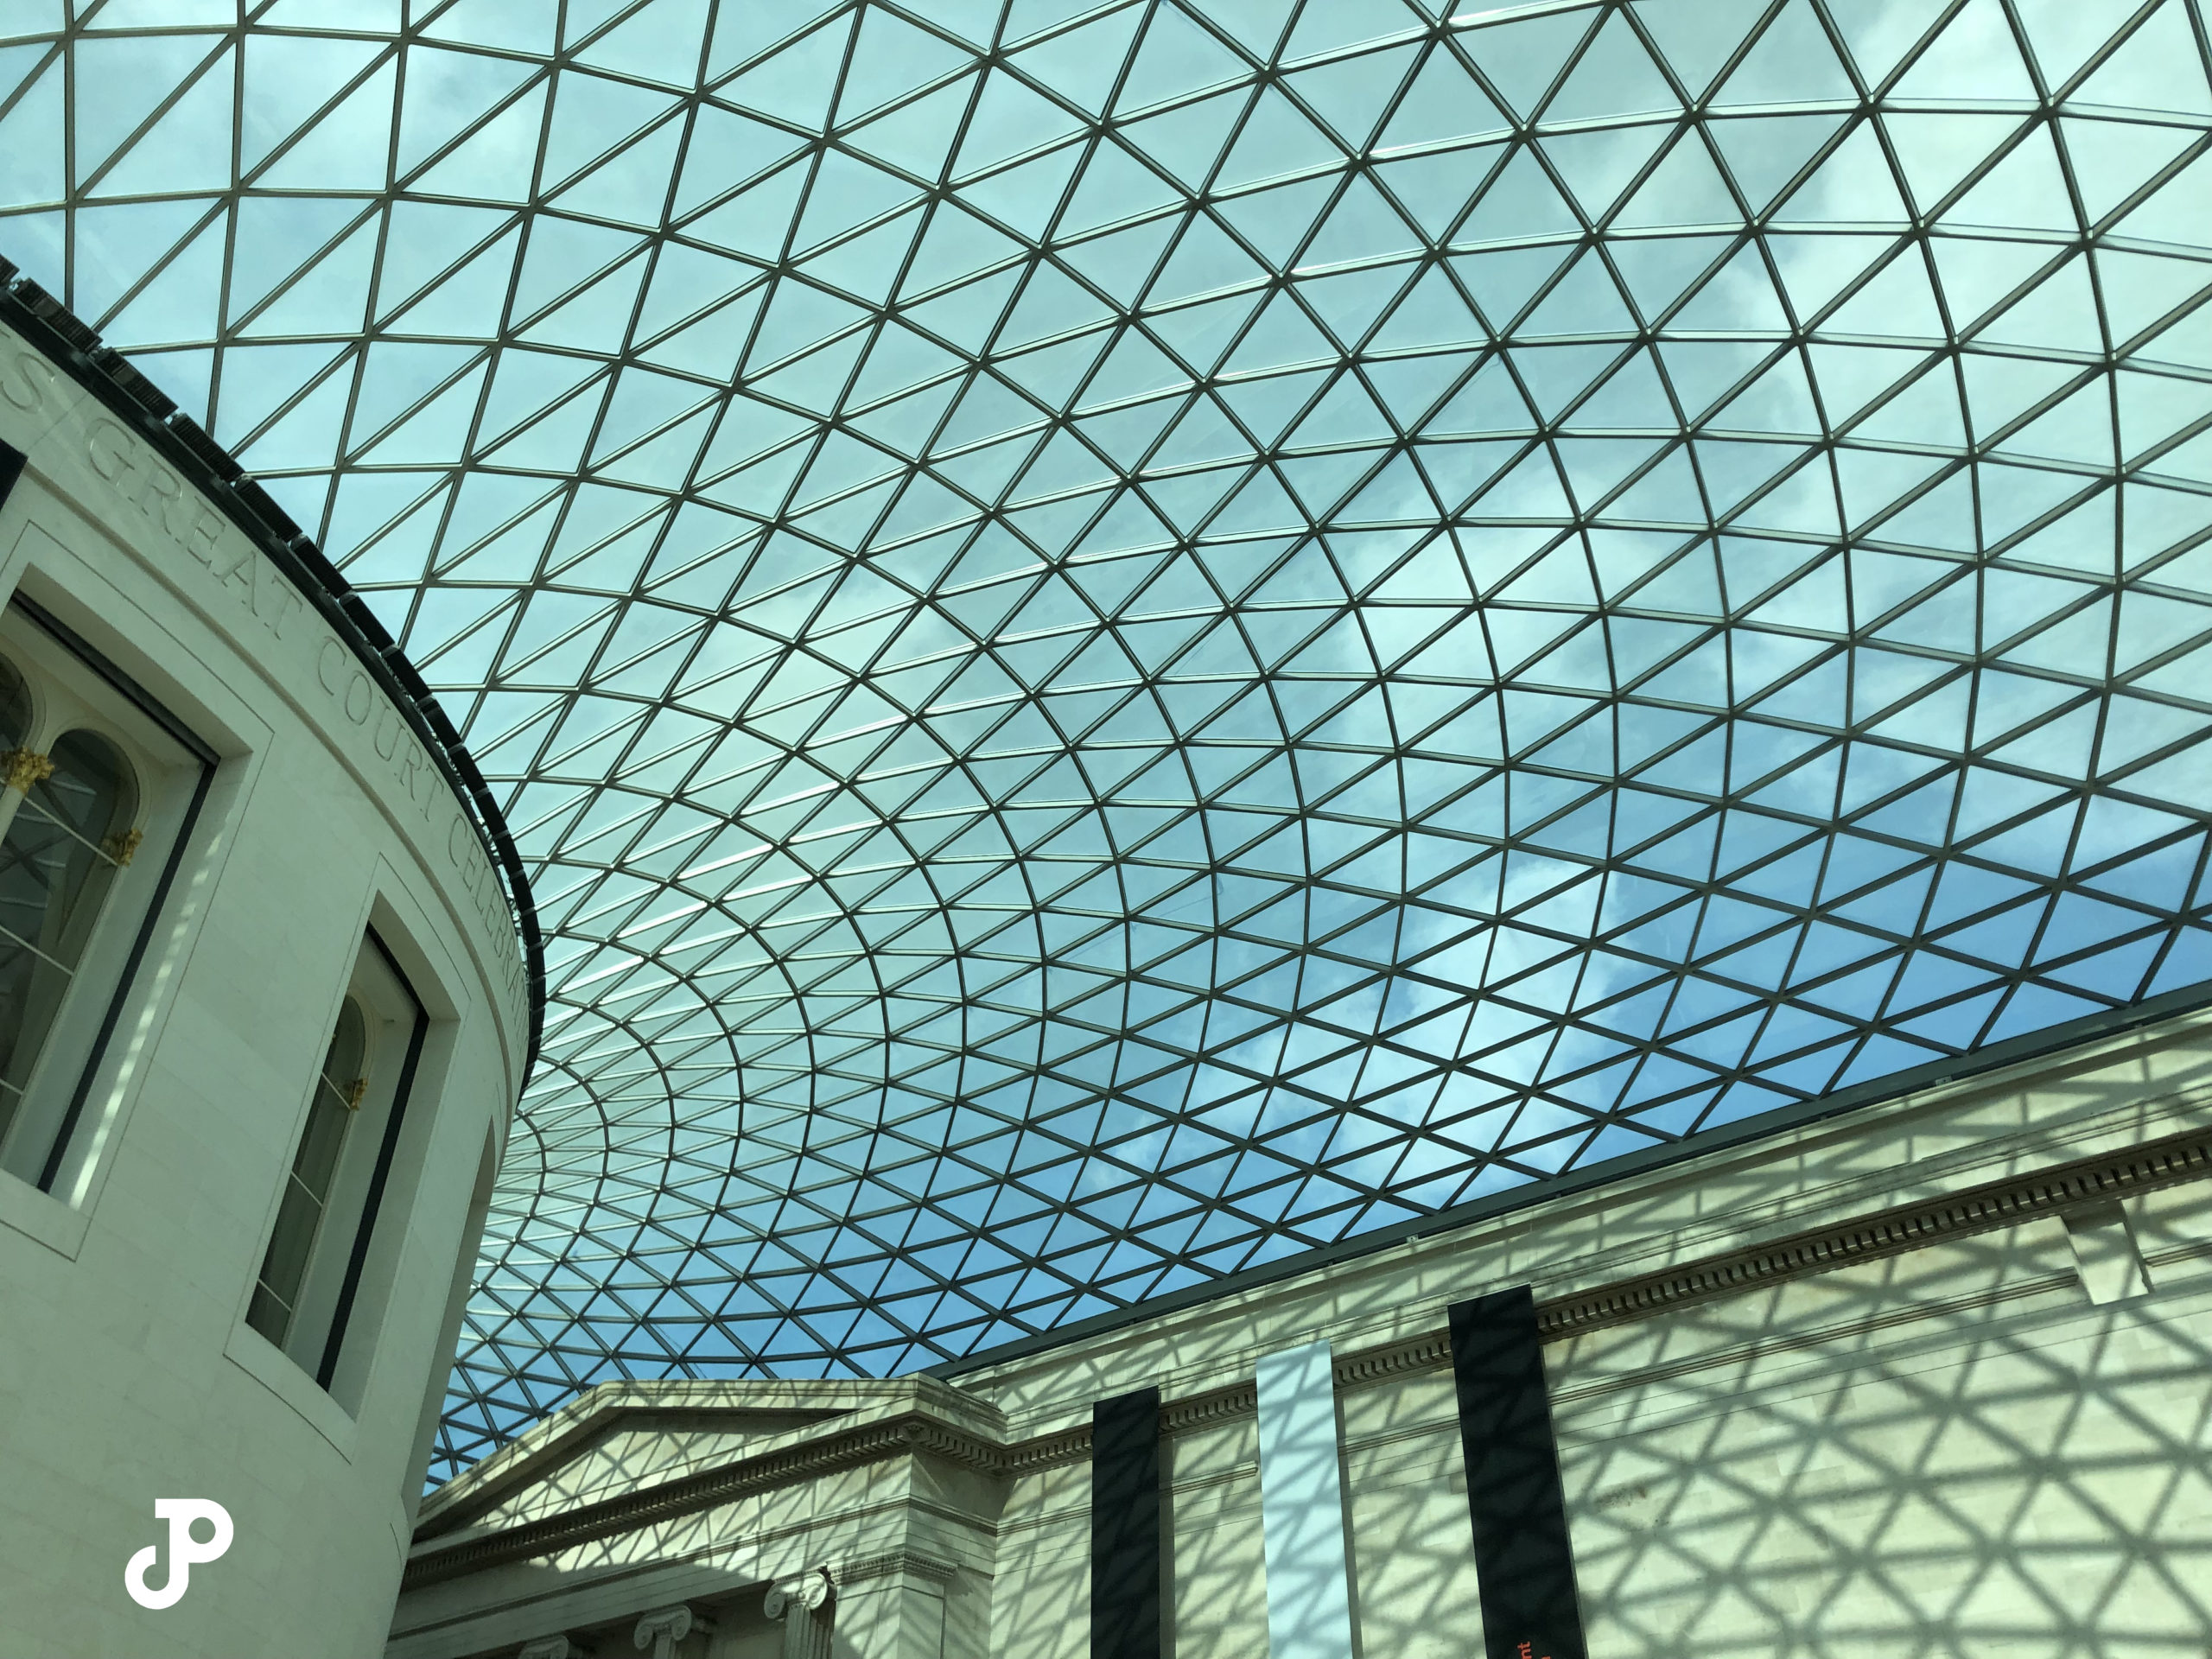 the geometric glass ceiling in the entryway of the British Museum